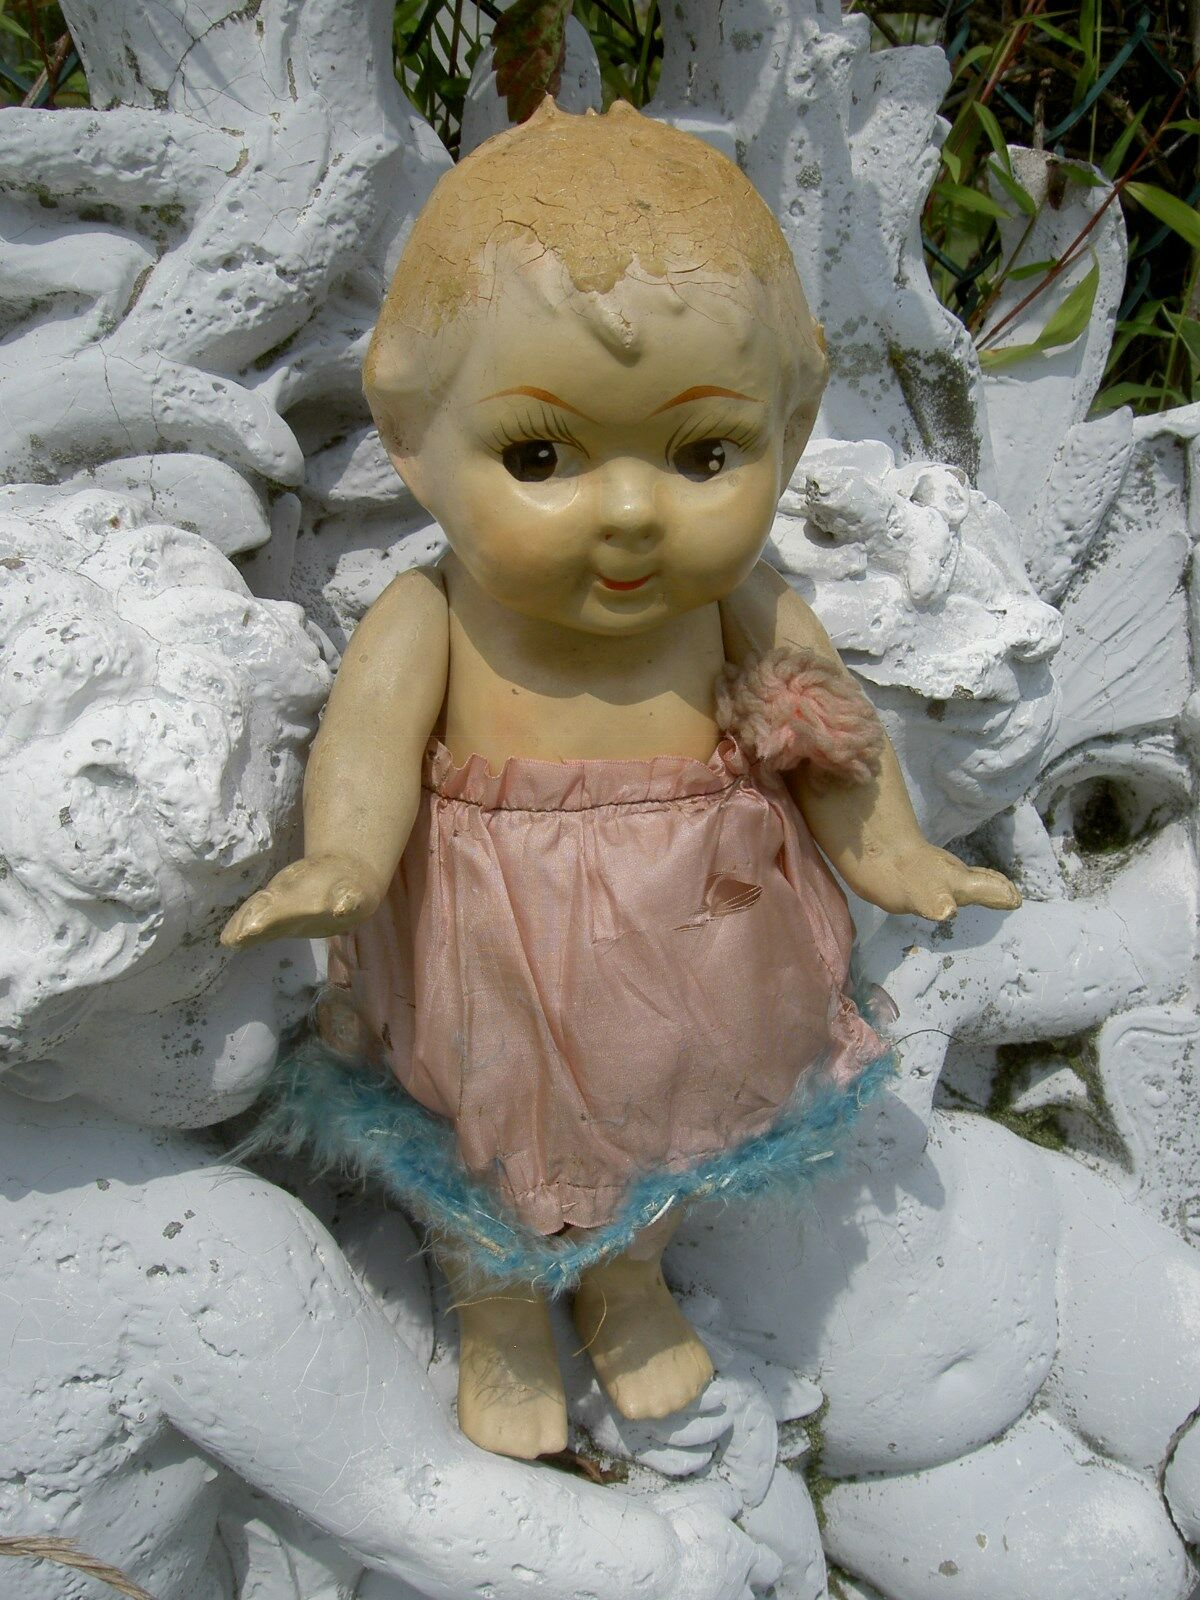 DARLING  1920s jointed composition CUPIE (Kewpie) autonival bambola, googly  eyes  economico